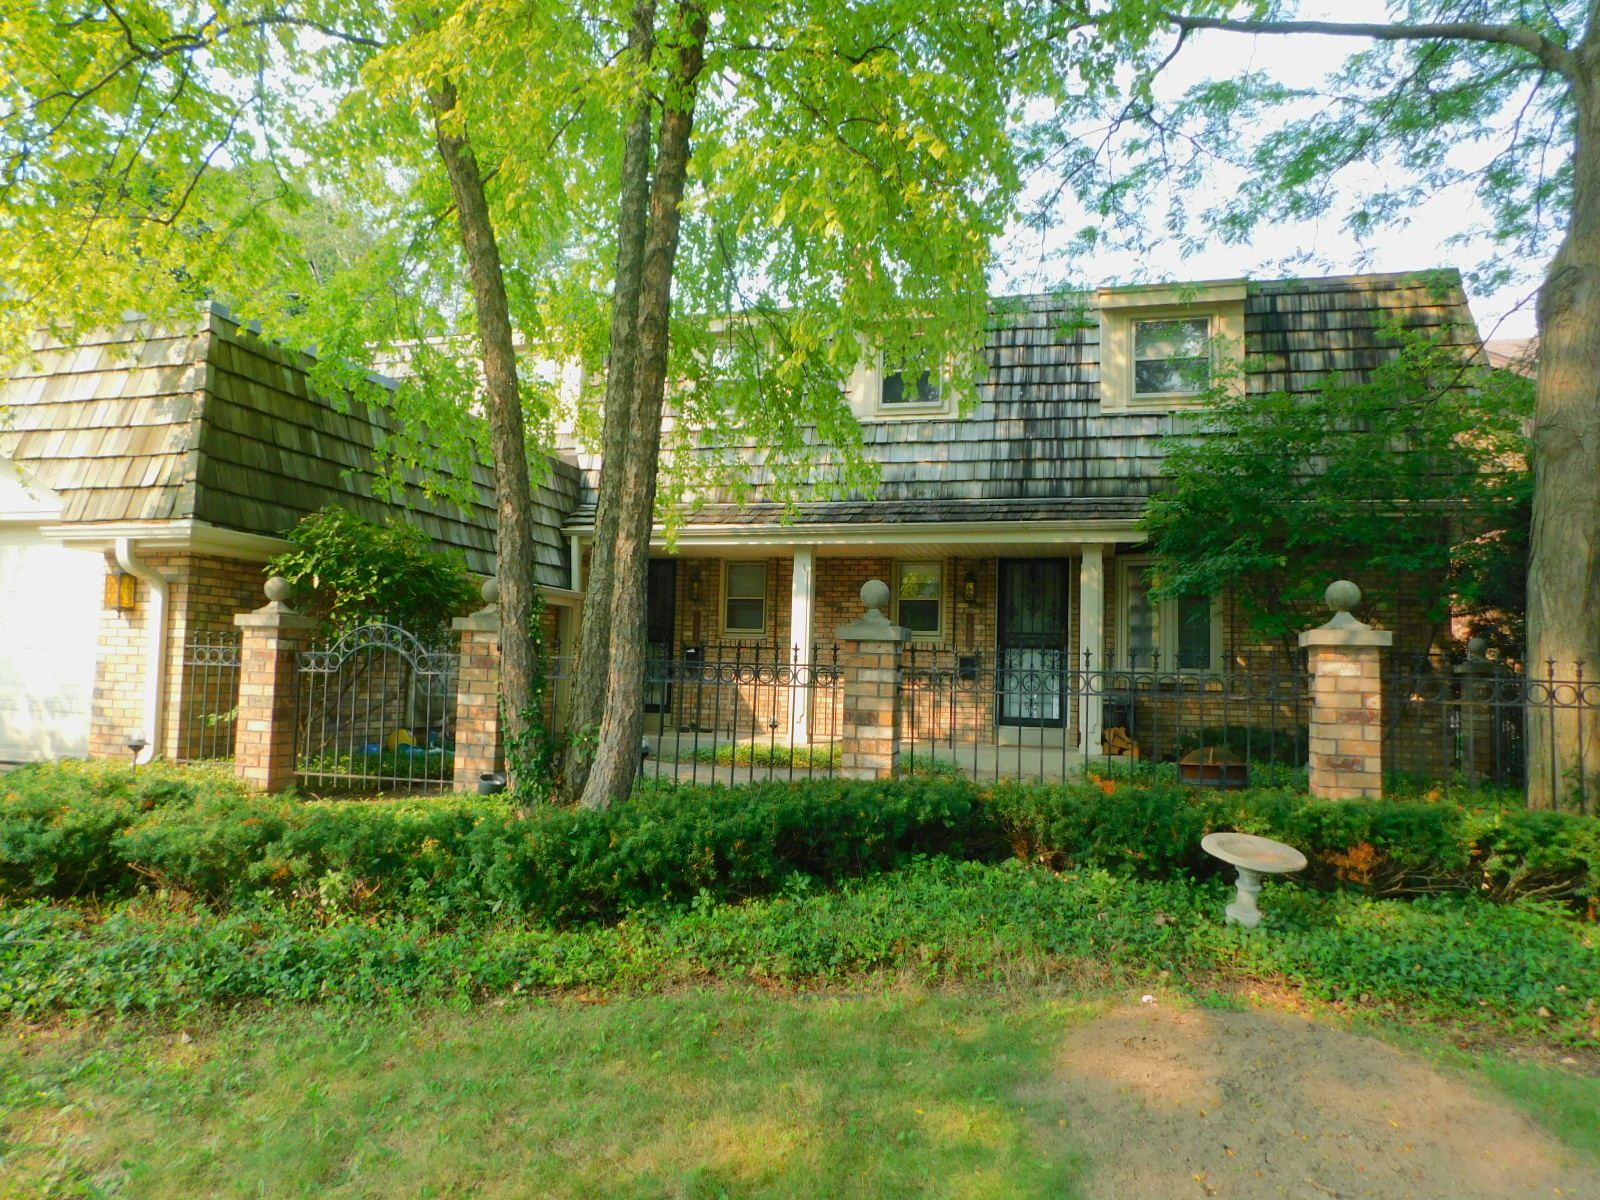 1932 River Park Ct #1934, Wauwatosa, WI 53226 - MLS#: 1754147